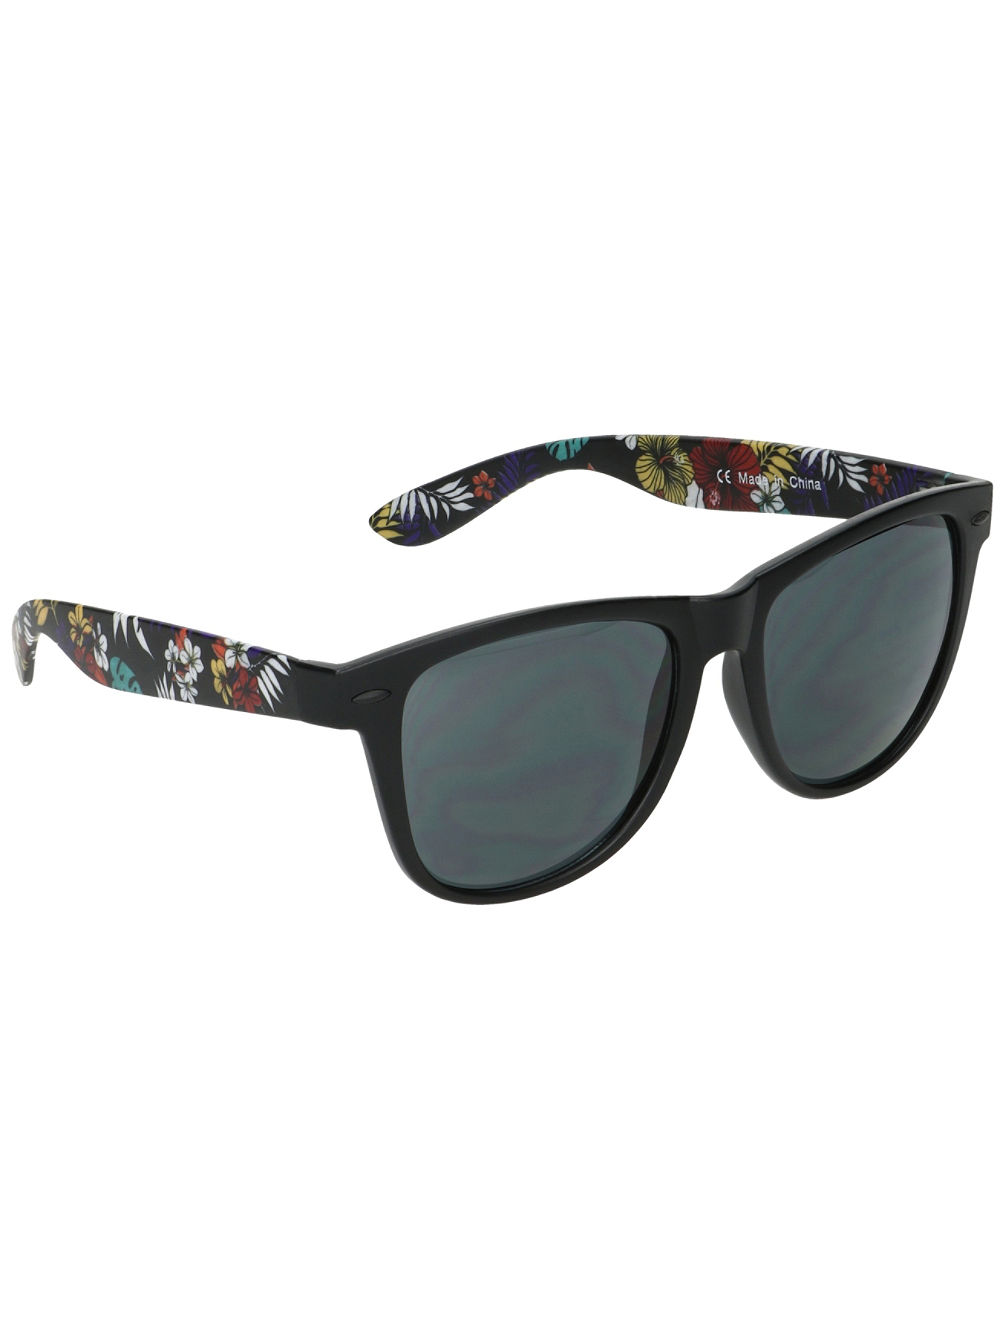 empyre wayfarer kua floral palm sonnenbrille online kaufen bei blue. Black Bedroom Furniture Sets. Home Design Ideas